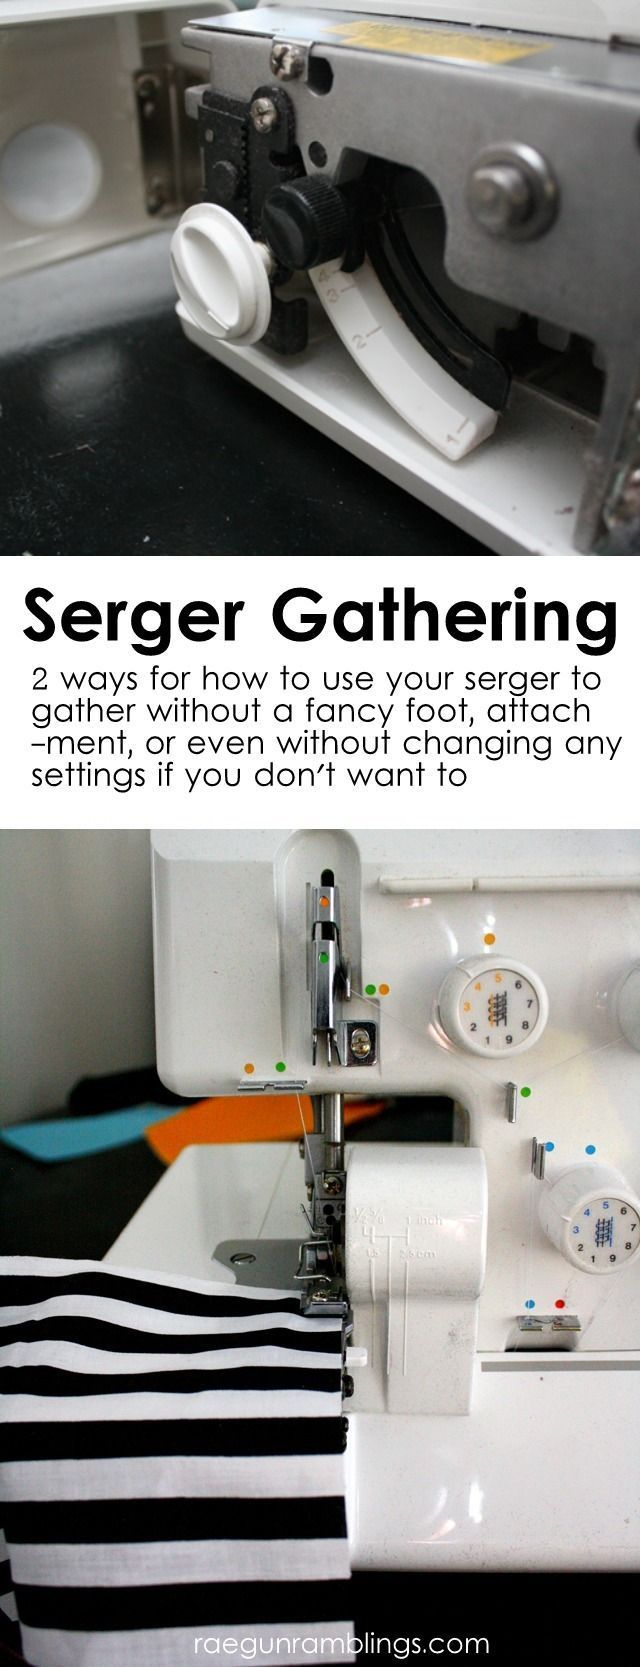 Two super easy ways to gather on a serger without extra feet or attachments - Rae Gun Ramblings